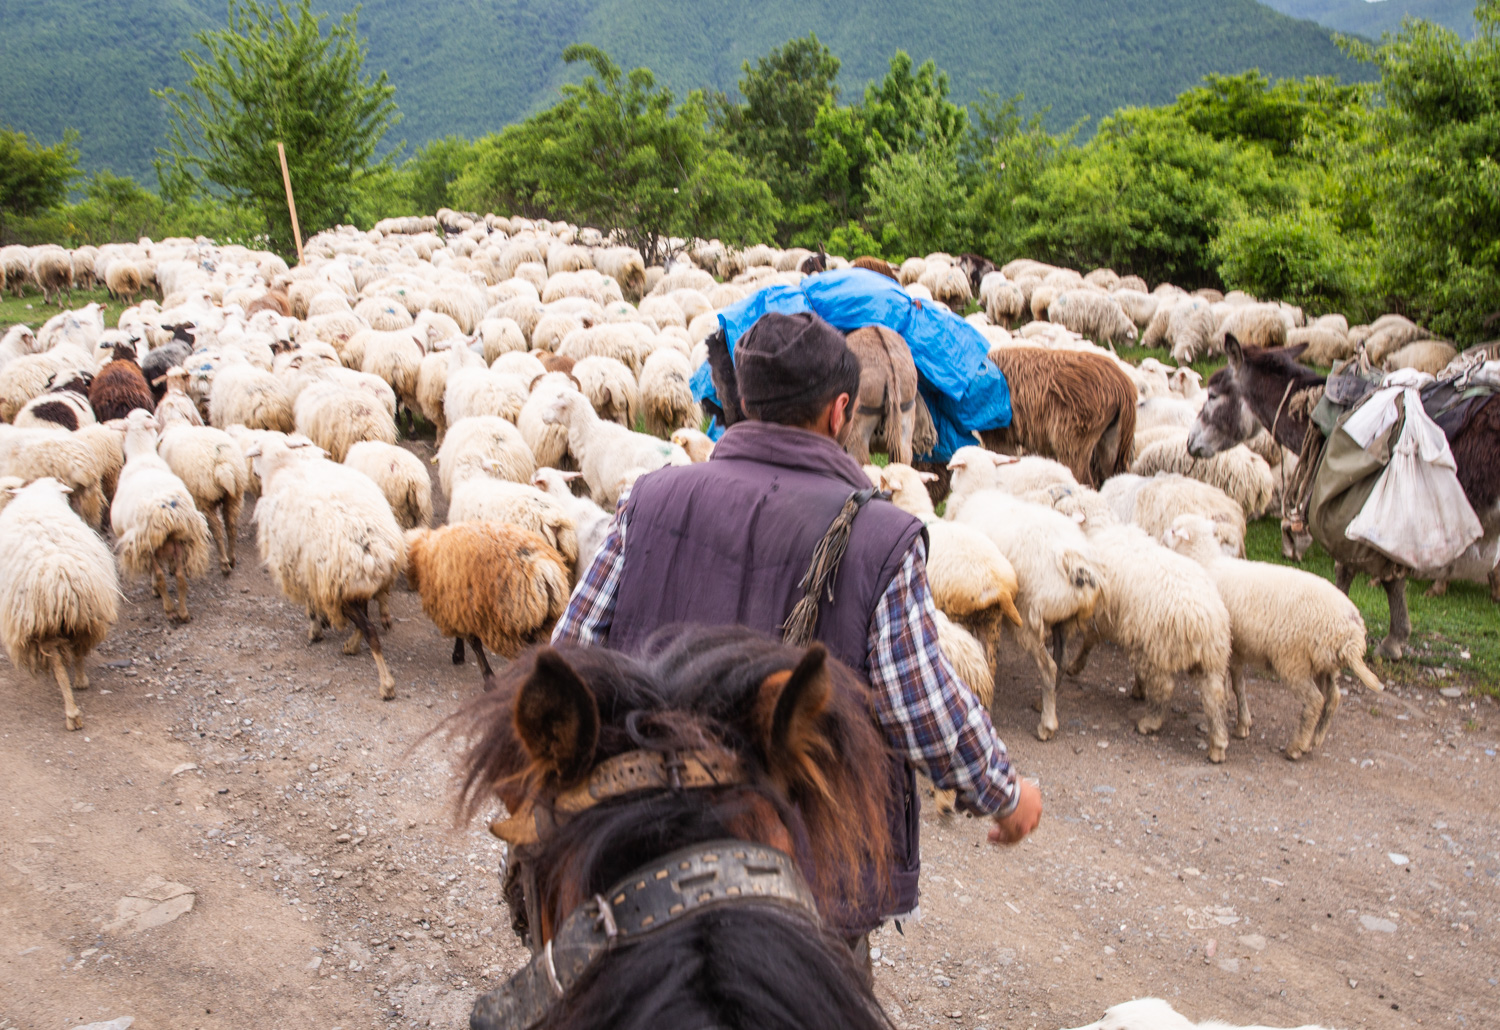 Sheep herding outside of Tbilisi, Georgia